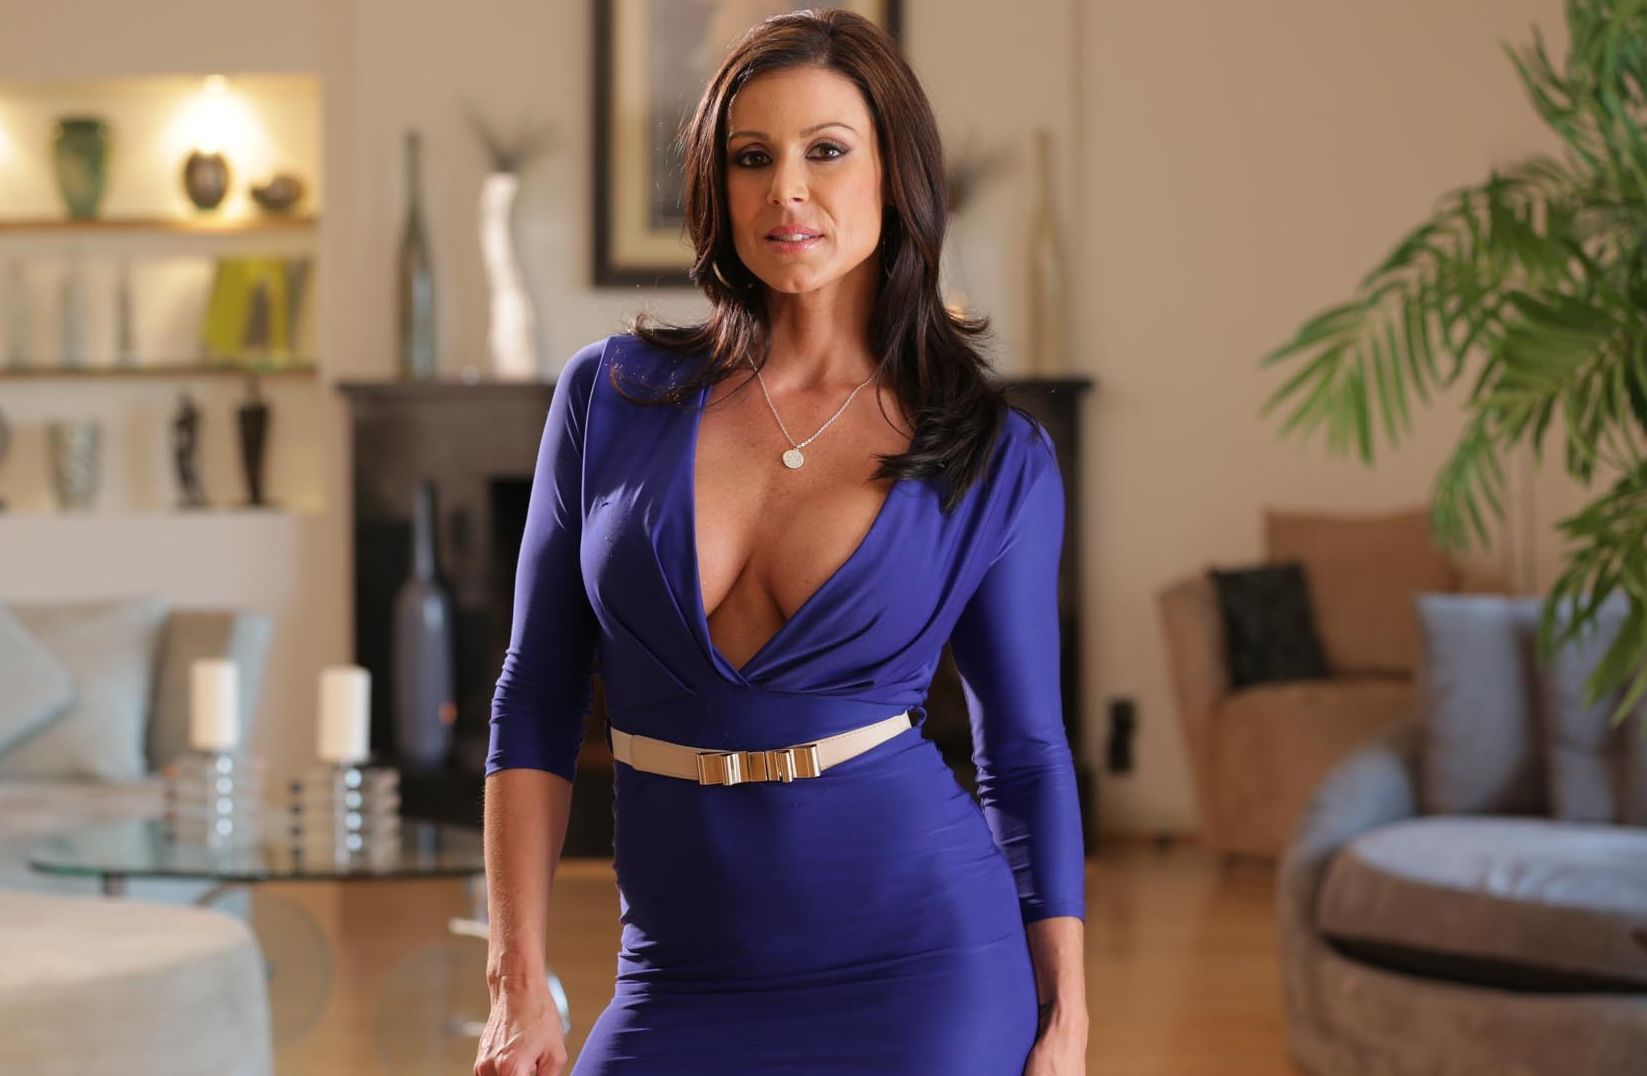 Kendra Lust Net Worth 2021 - Adult Actress, Model, and